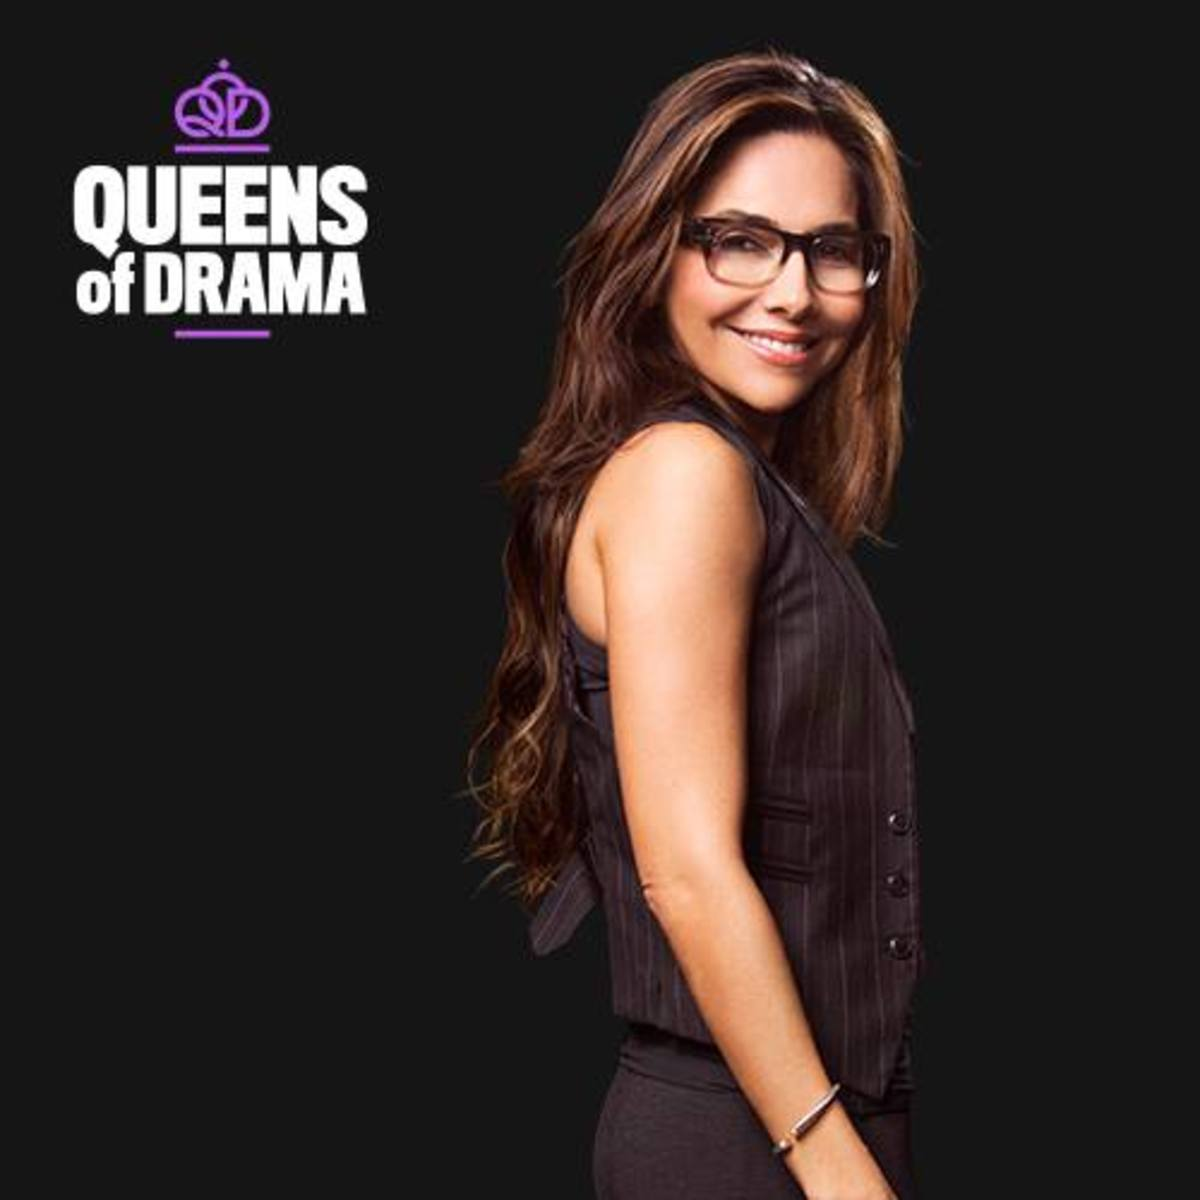 INTERVIEW: Vanessa Marcil Keeps It Real About Pop's Queens ... Vanessa Marcil